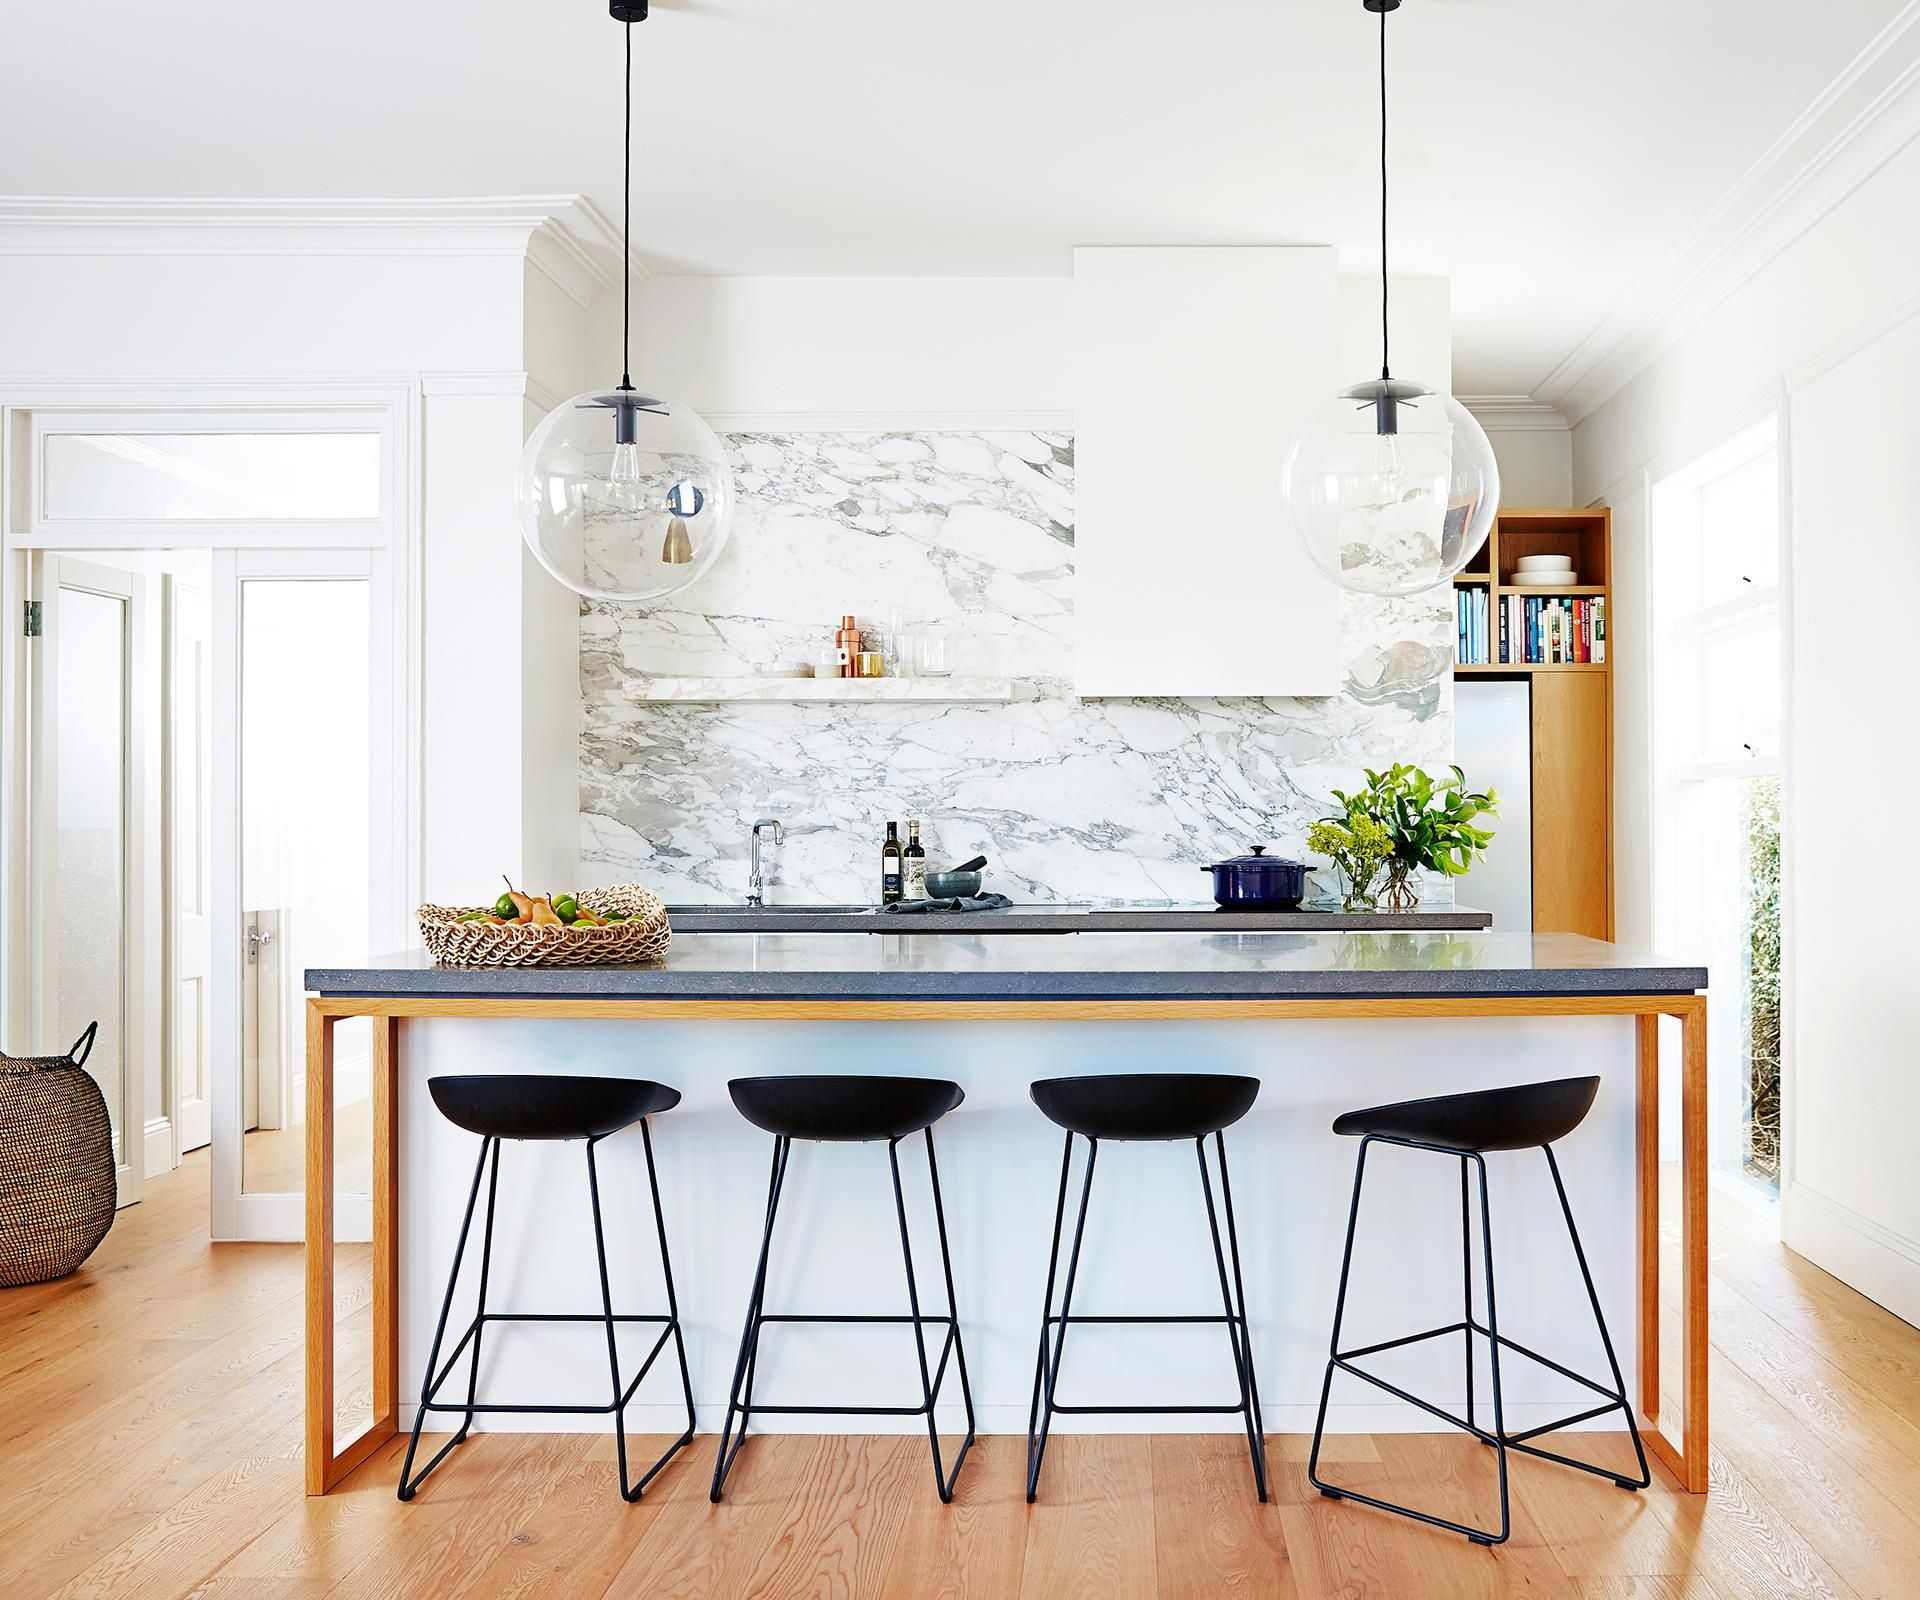 Kitchen Island Bench Pendant Lighting: Kitchen Profile: Time To Shine In 2019